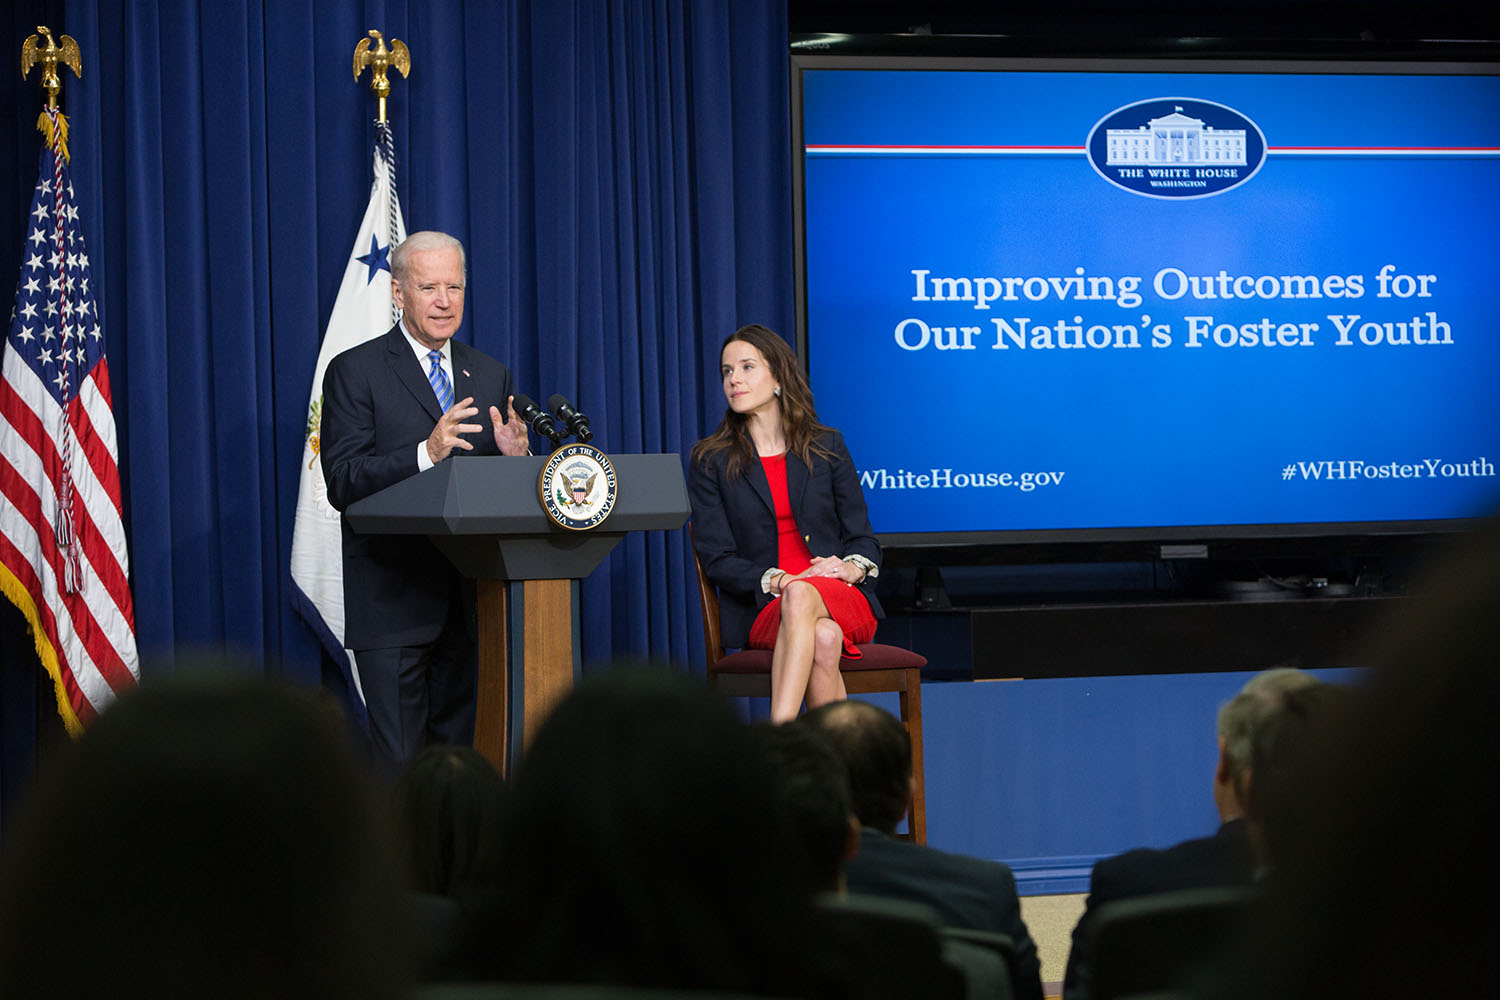 Vice President Biden delivers remarks with his daughter Ashley Biden during a White House Foster Care event